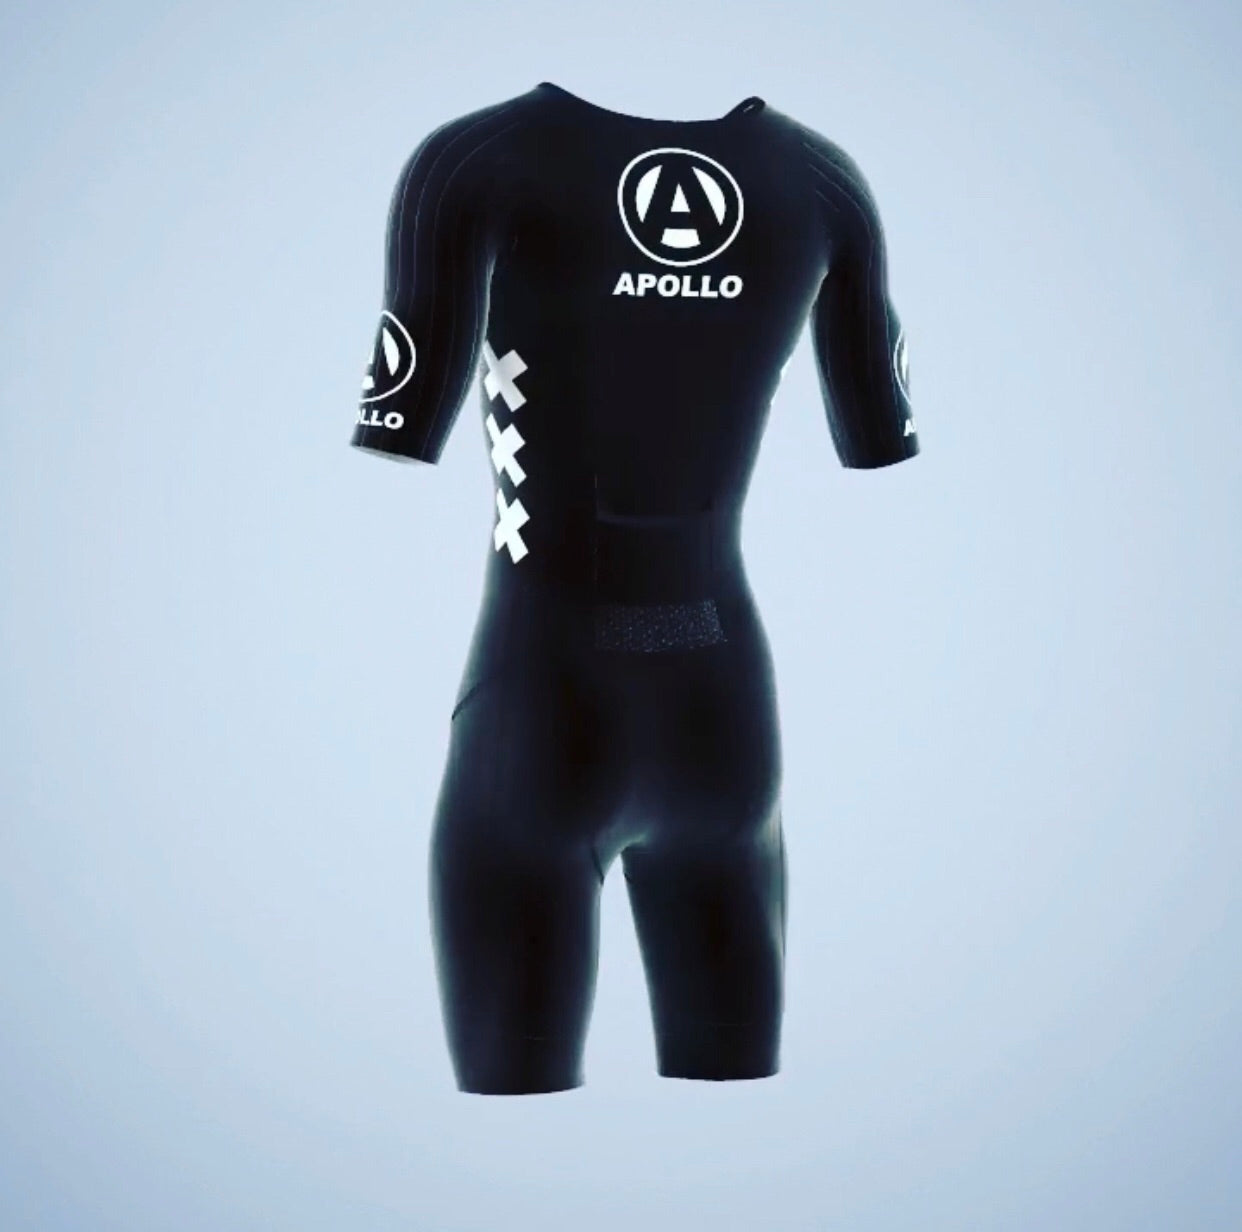 Apollo x Bioracer Triathlon Suit